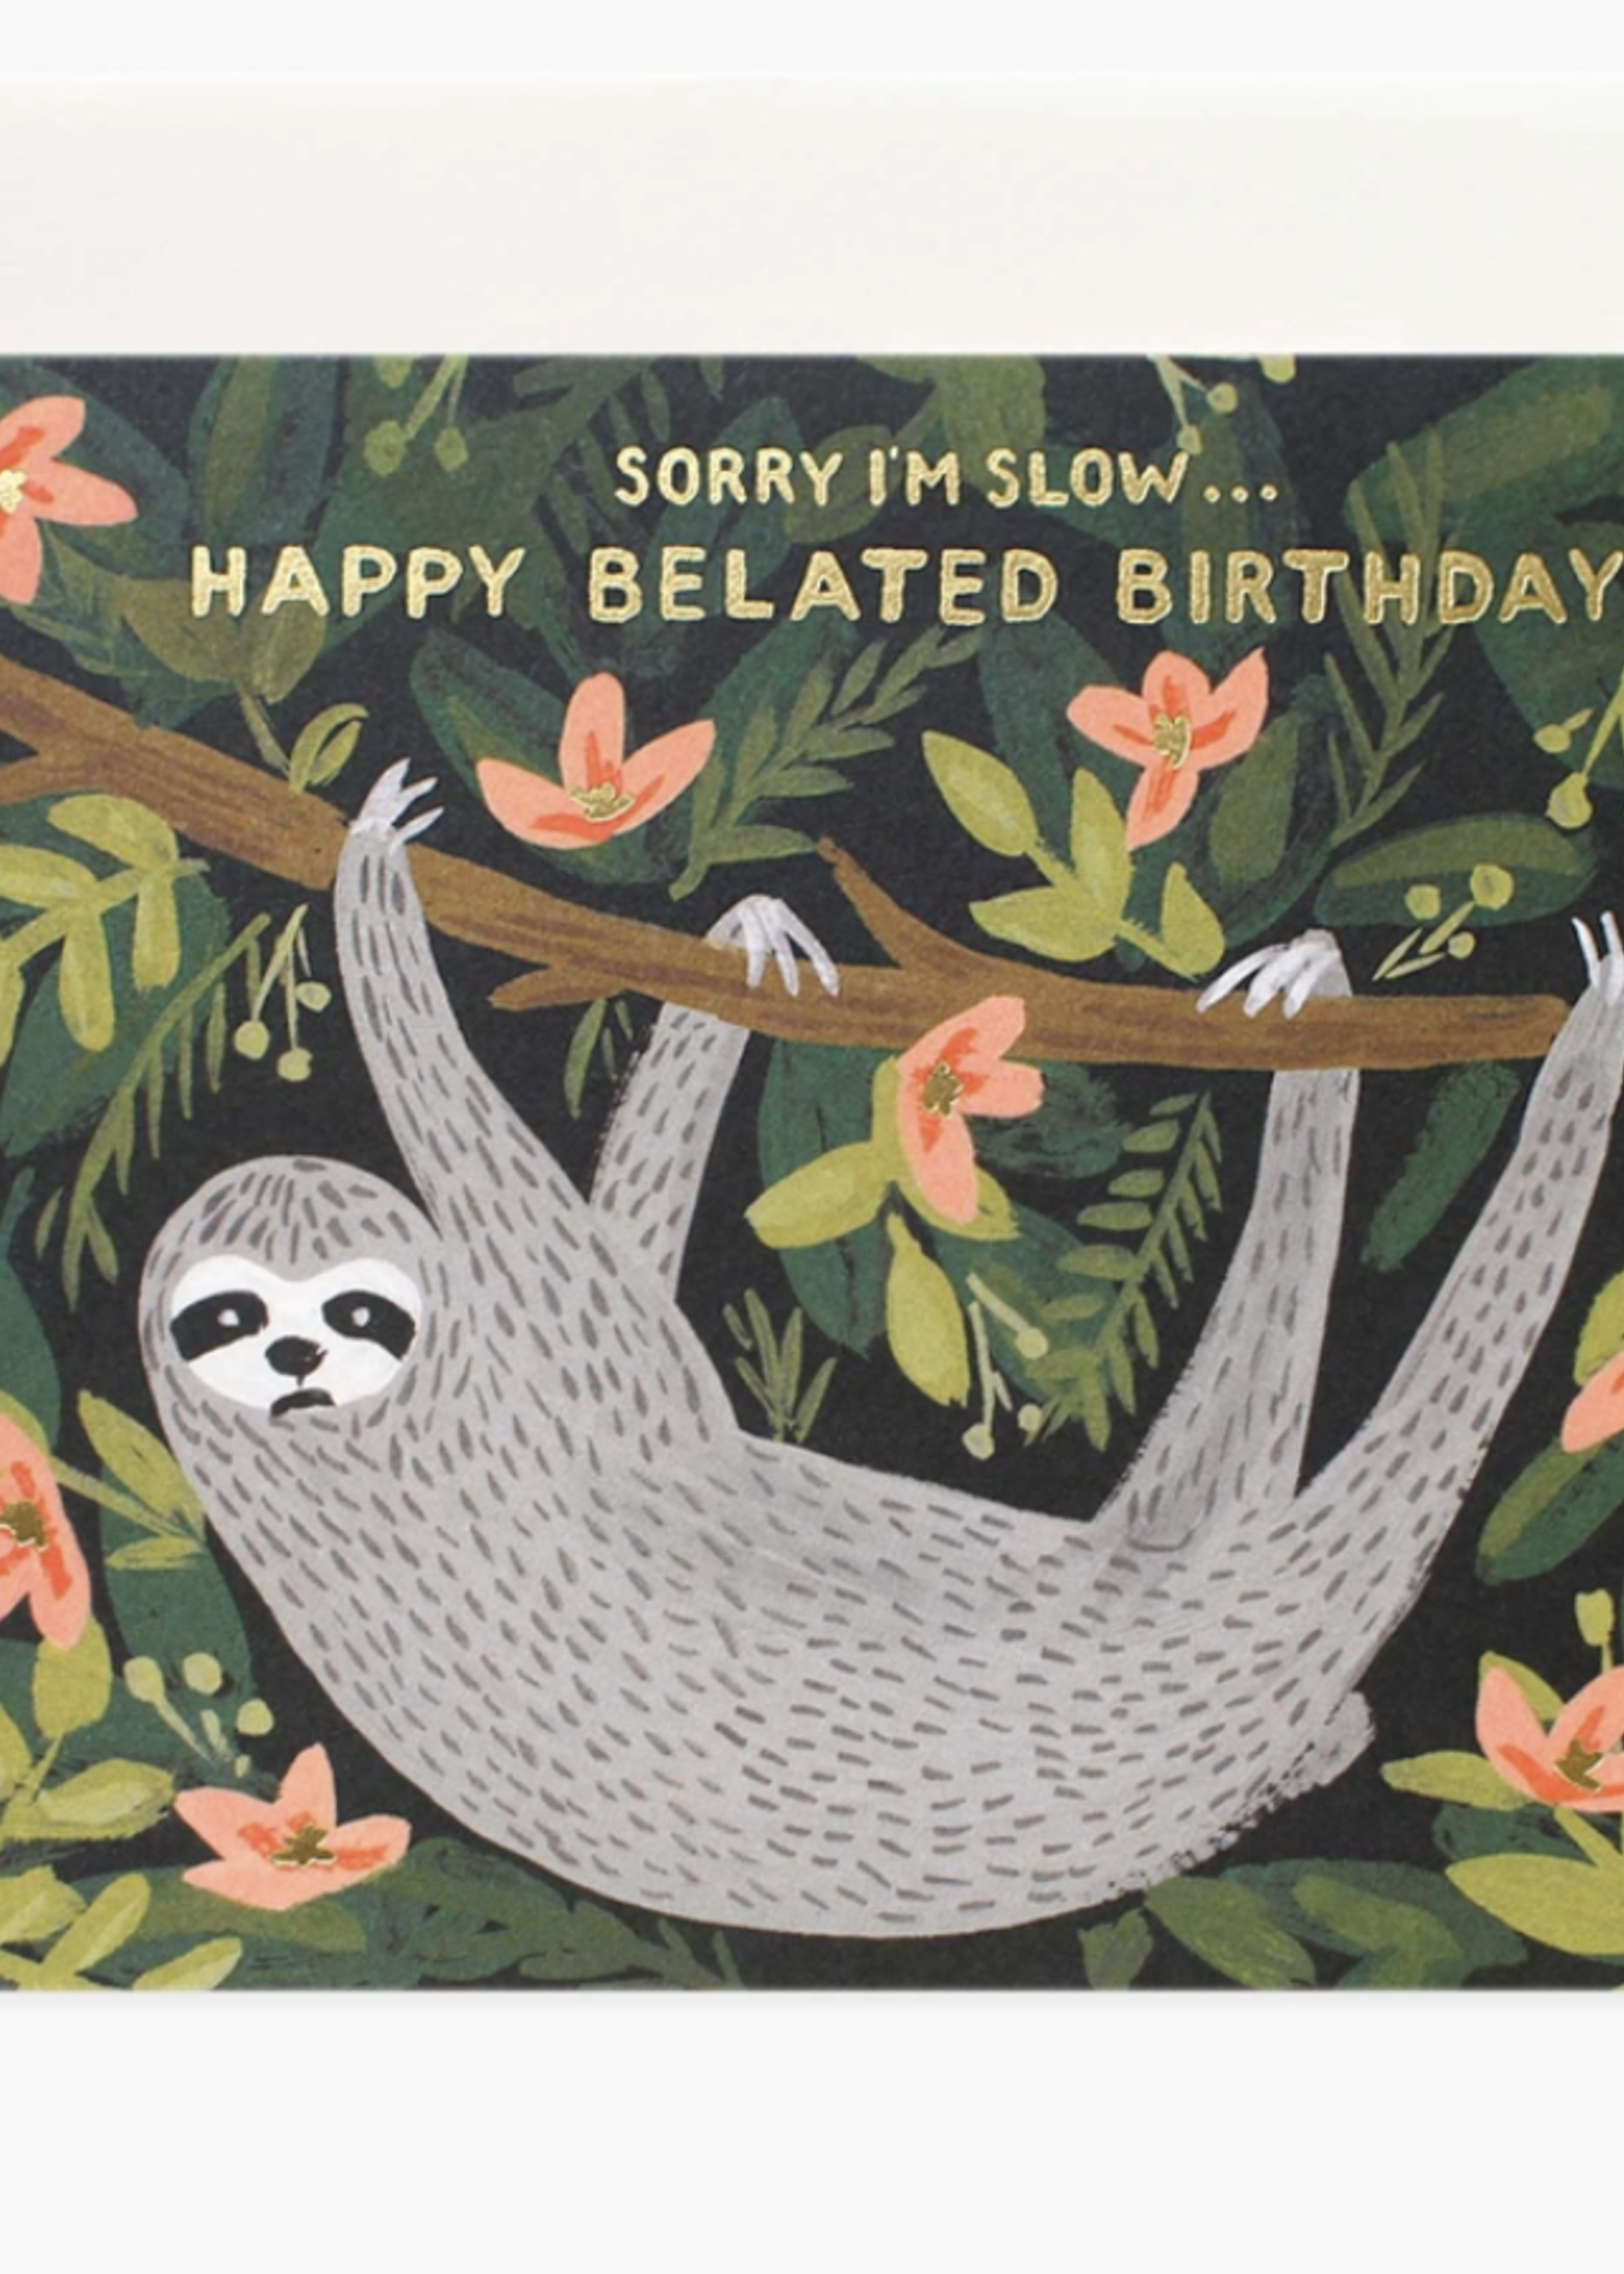 rifle paper co. rifle paper sloth belated birthday card